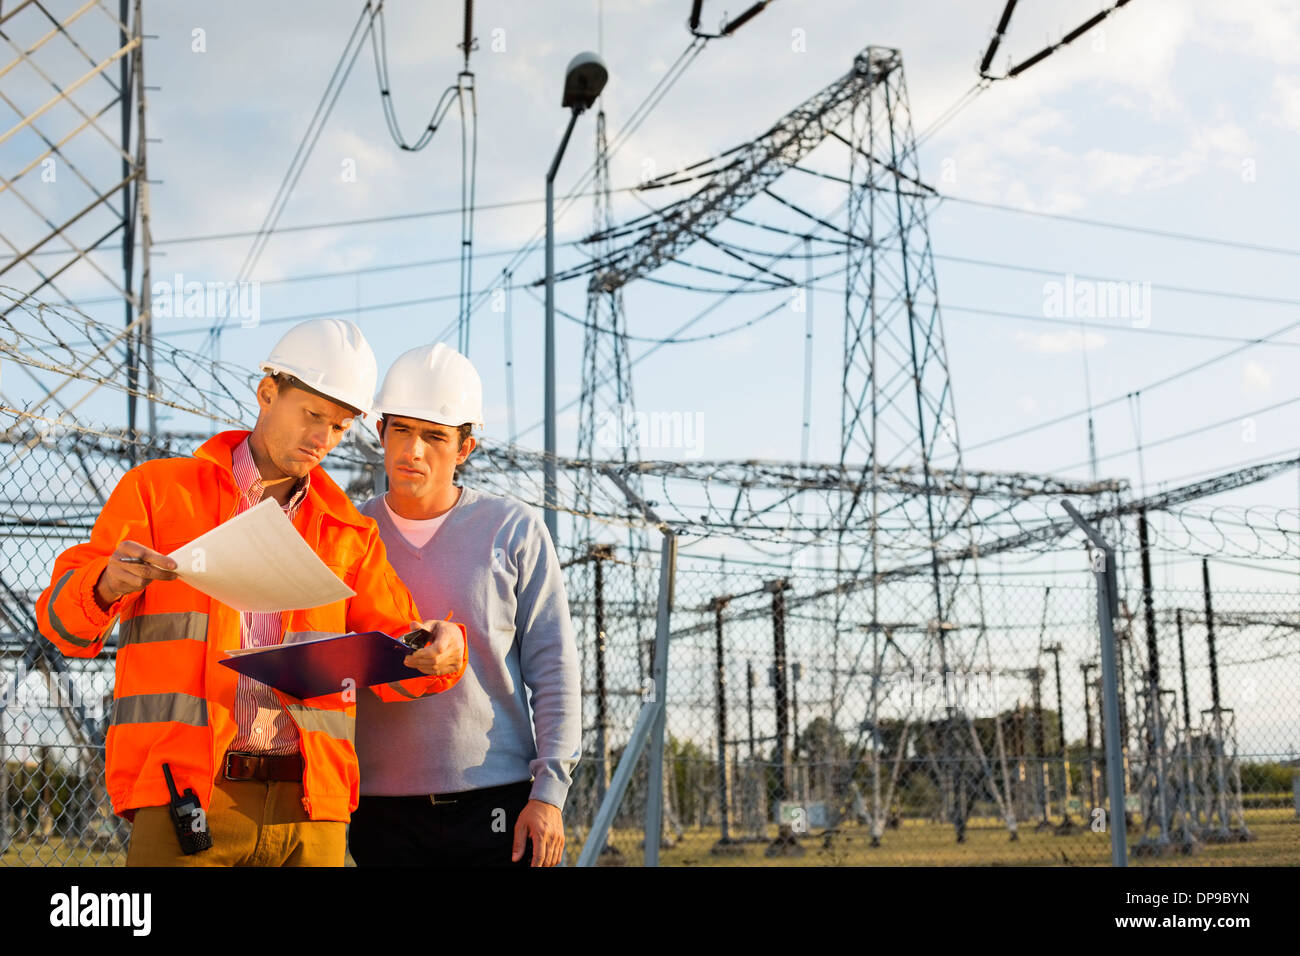 Male architects reviewing documents together at electric power plant - Stock Image